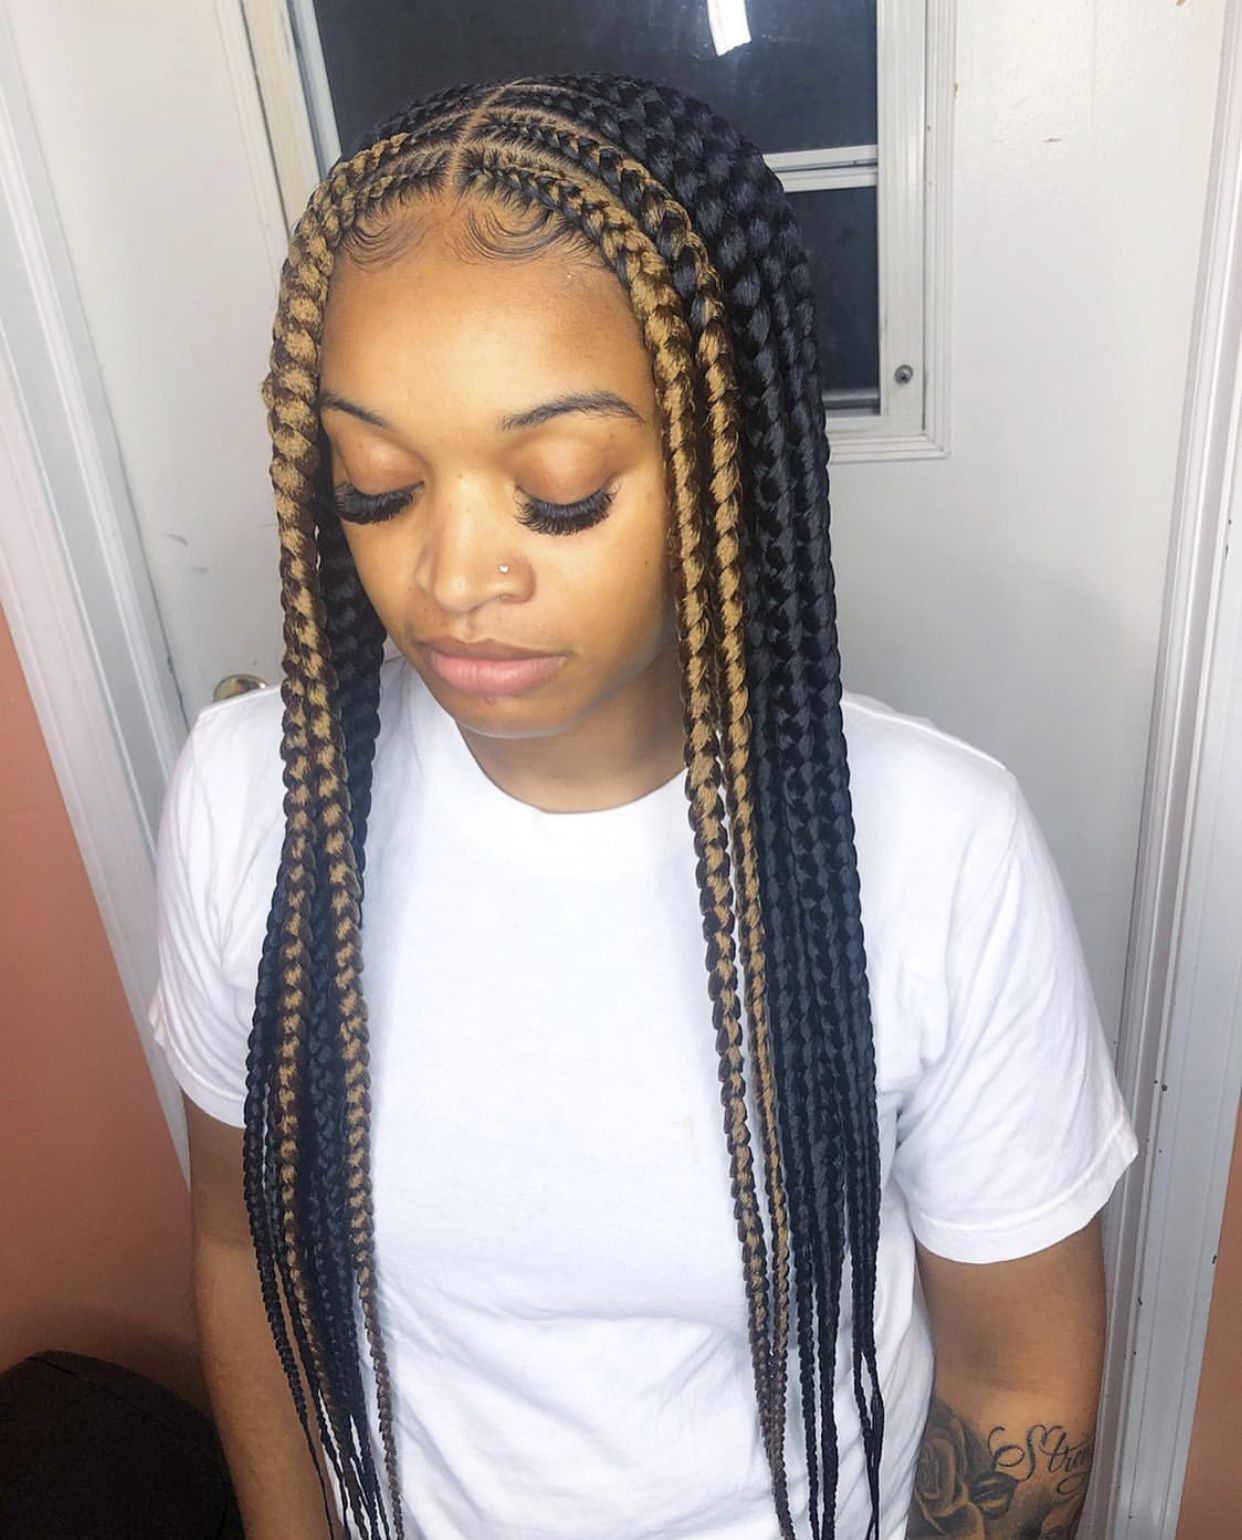 Check Out Simonelovee Cornrow Hairstyles Braided Hairstyles Kids Braided Hairstyles